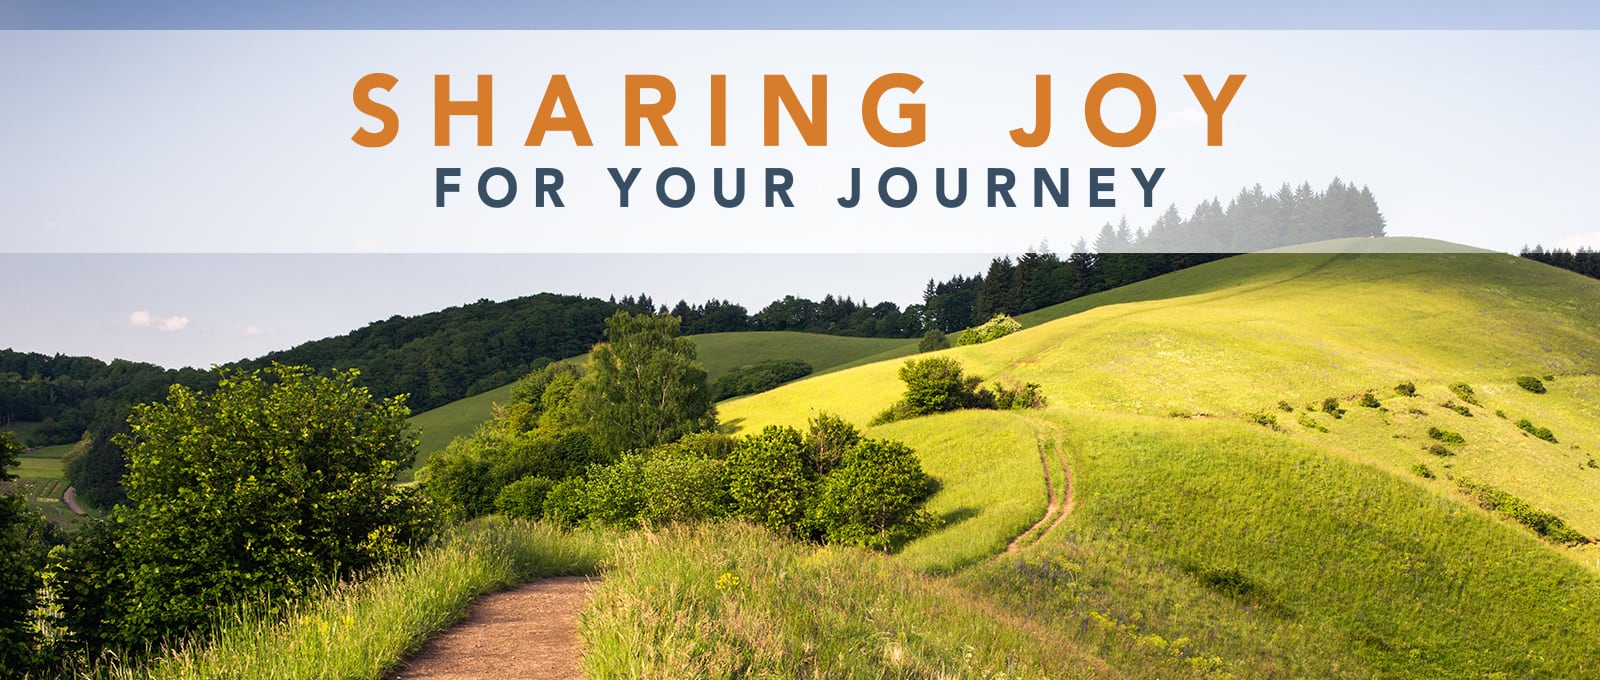 Sharing Joy For Your Journey